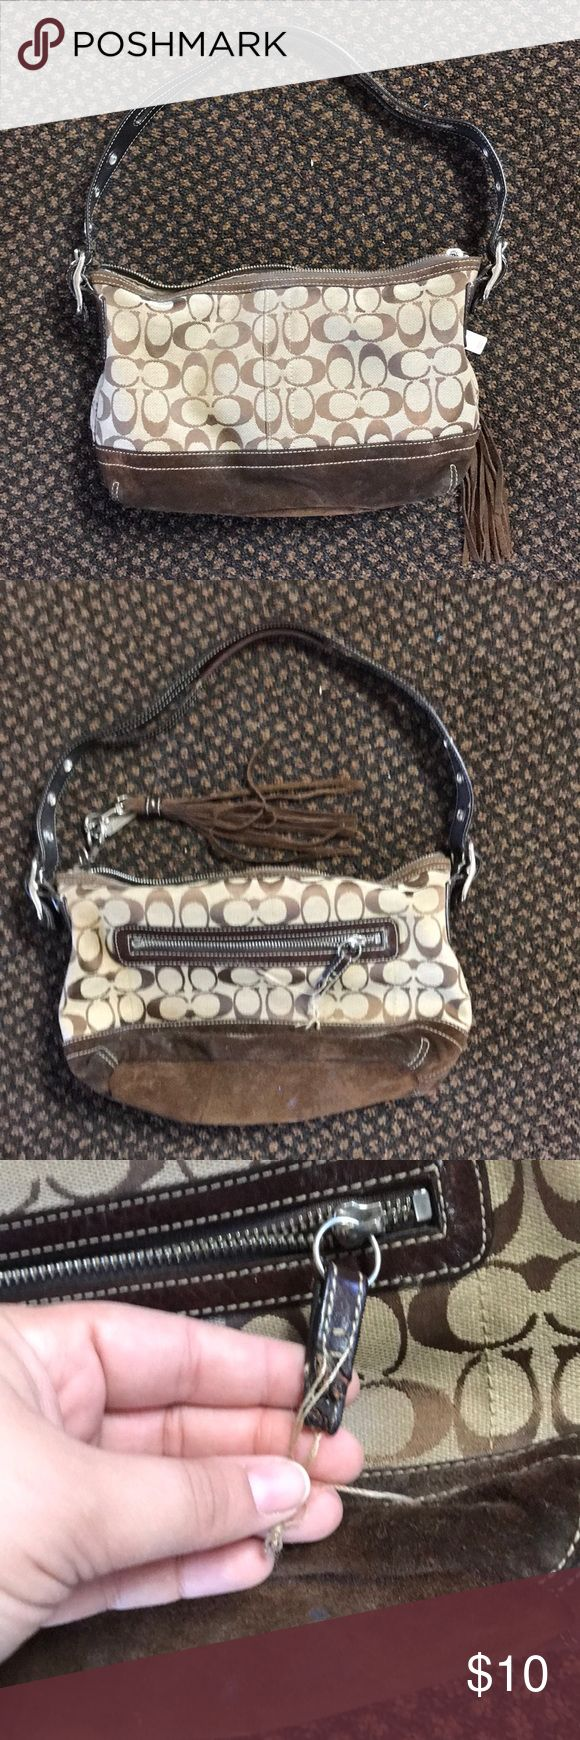 Coach hobo bag Coach hobo bag. Classic brown.  Does show wear and the one zipper has been chewed. Shown in pictures. Can snip the hanging strings but didn't want to so nothing is hidden. Very cute purse and nice size. Us buyers only. No trades. Bags Shoulder Bags